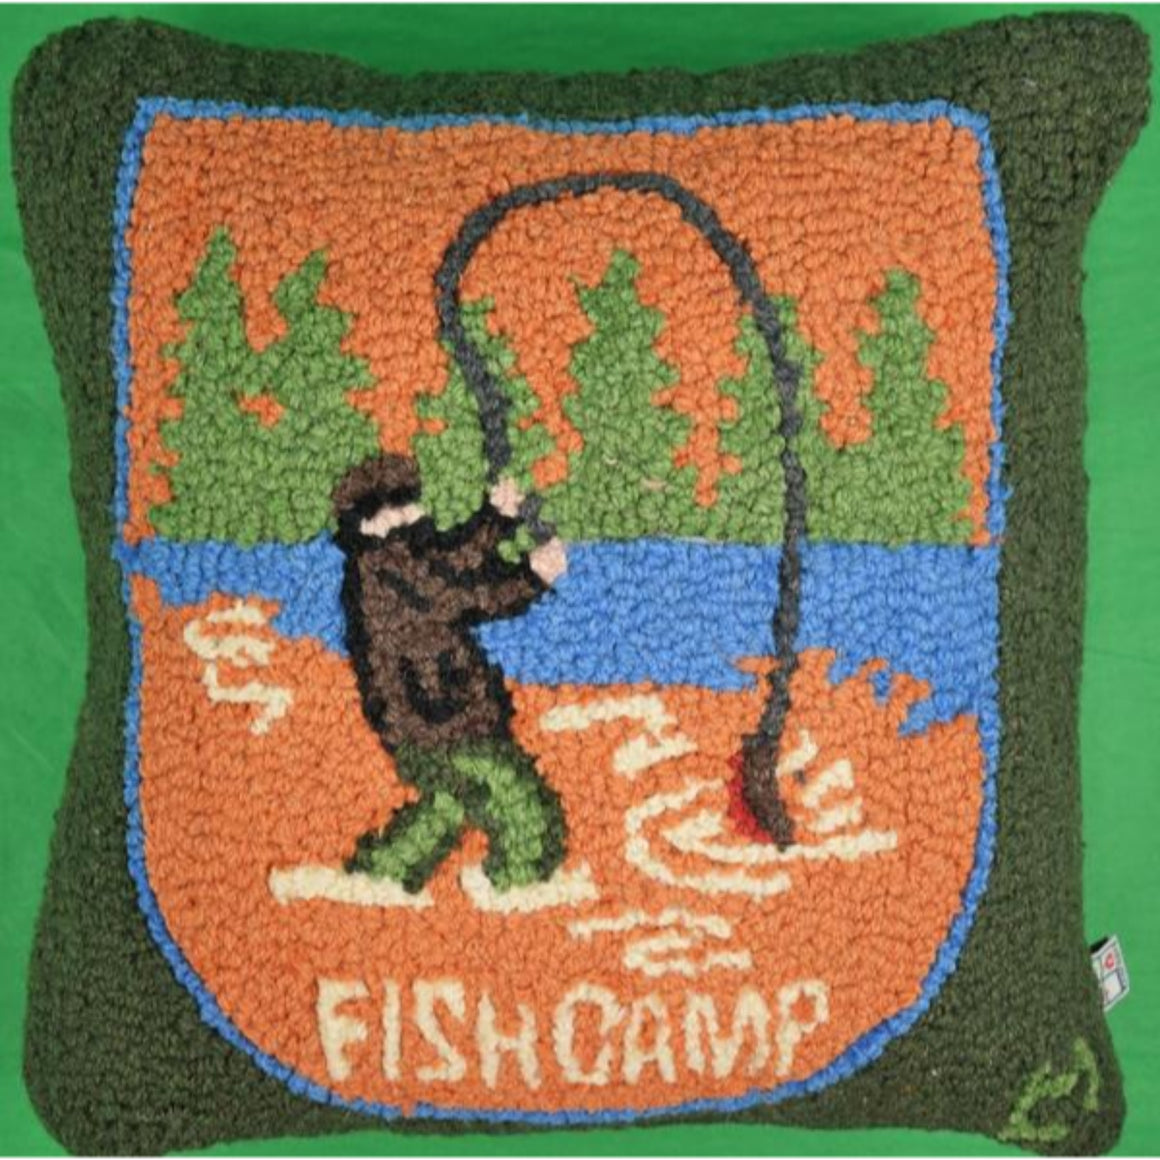 'Fish Camp Pillow'